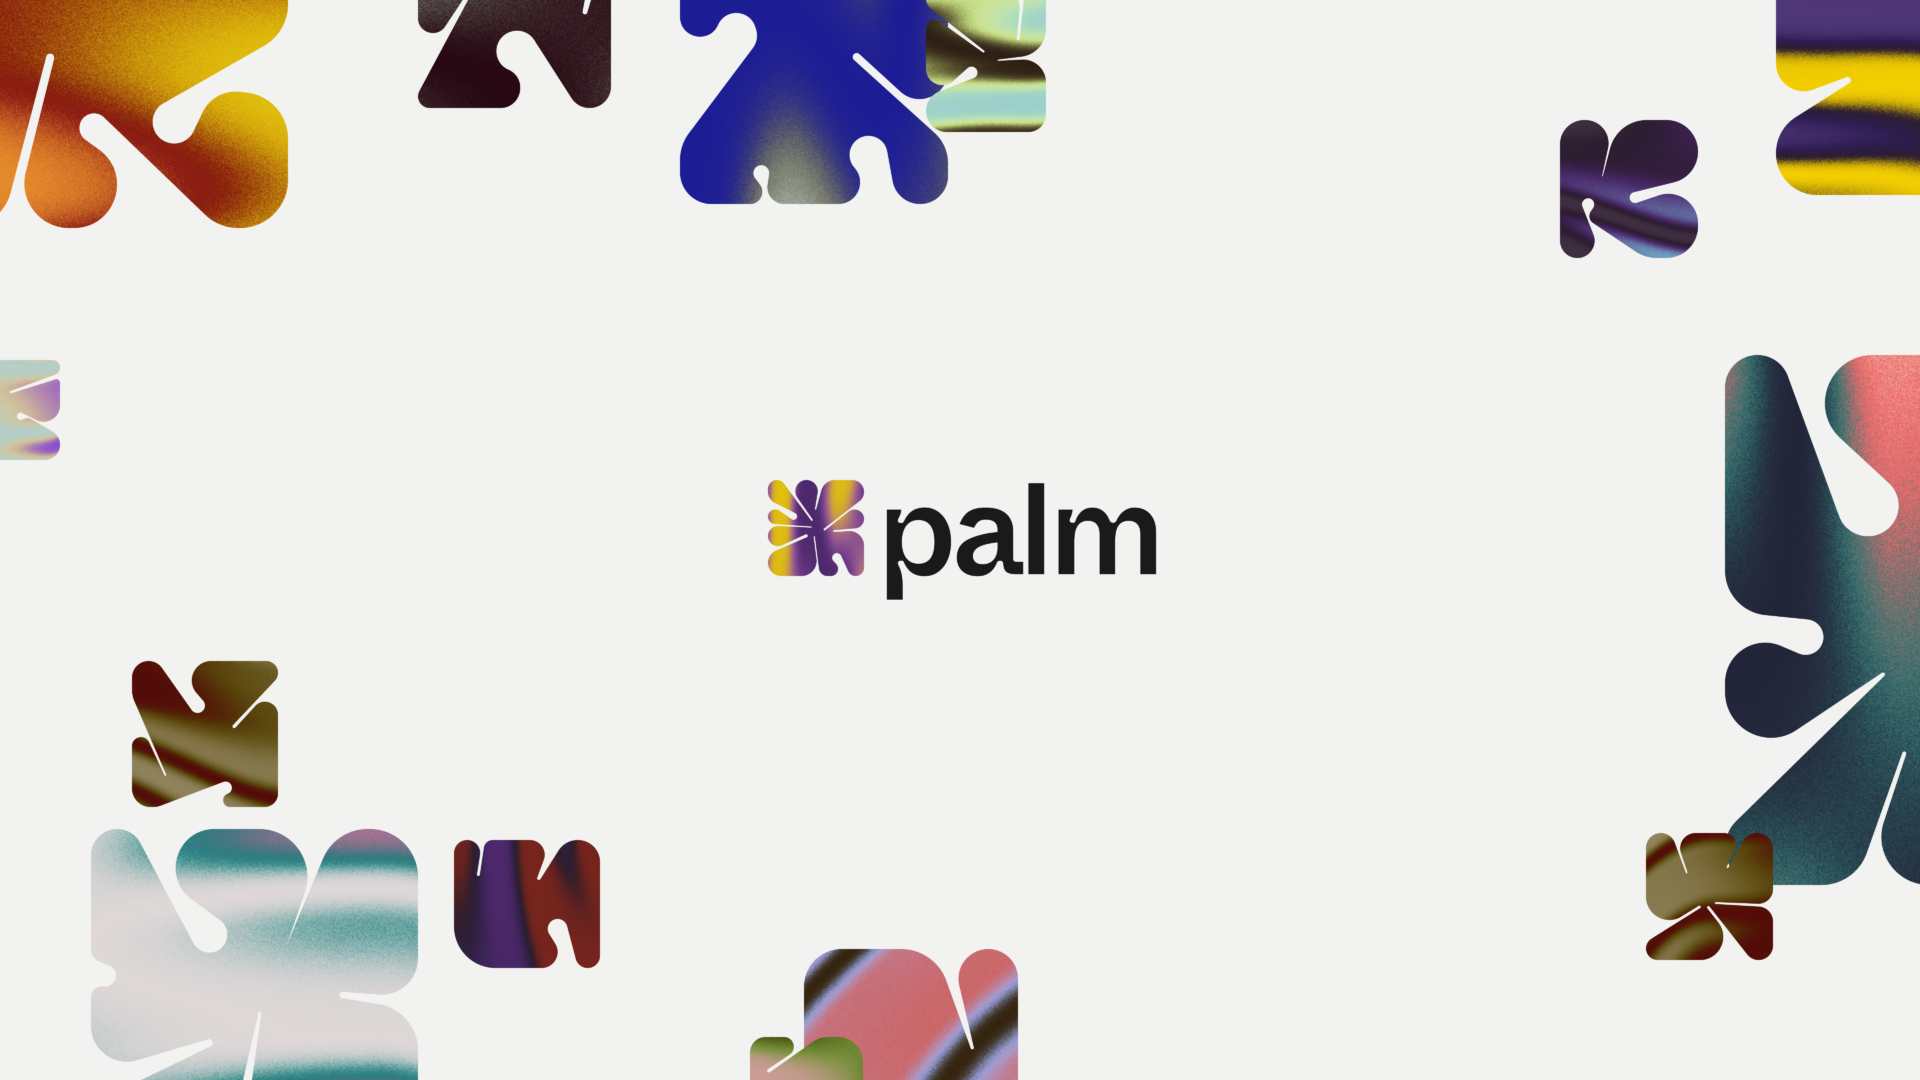 ConsenSys, HENI Group, and Heyday Films have introduced Palm NFT Studio.